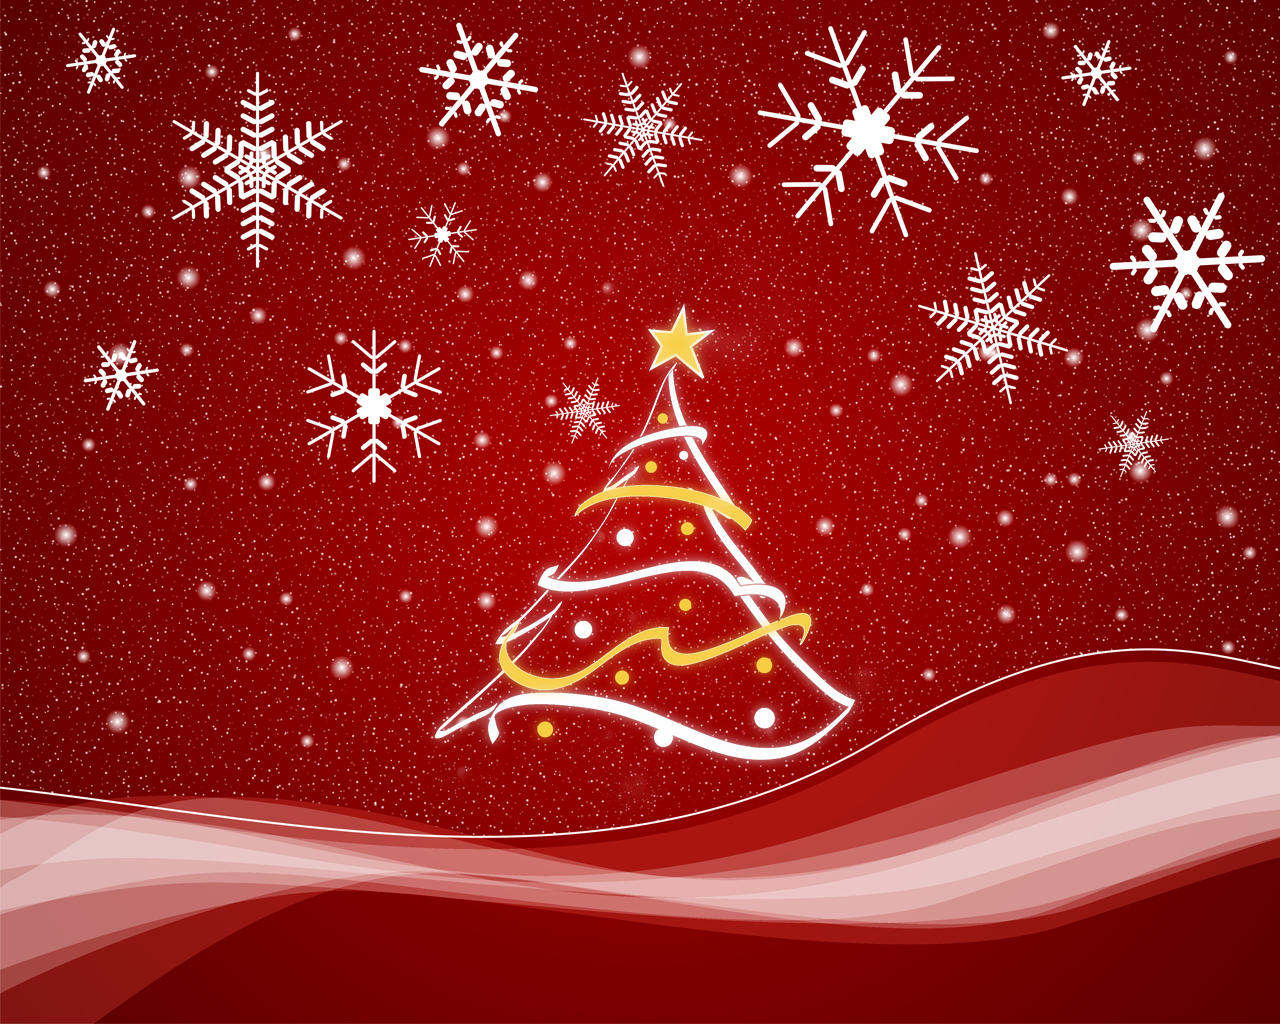 textures, New Year, Christmas texture, Christmas and New Year tree texture background, снег